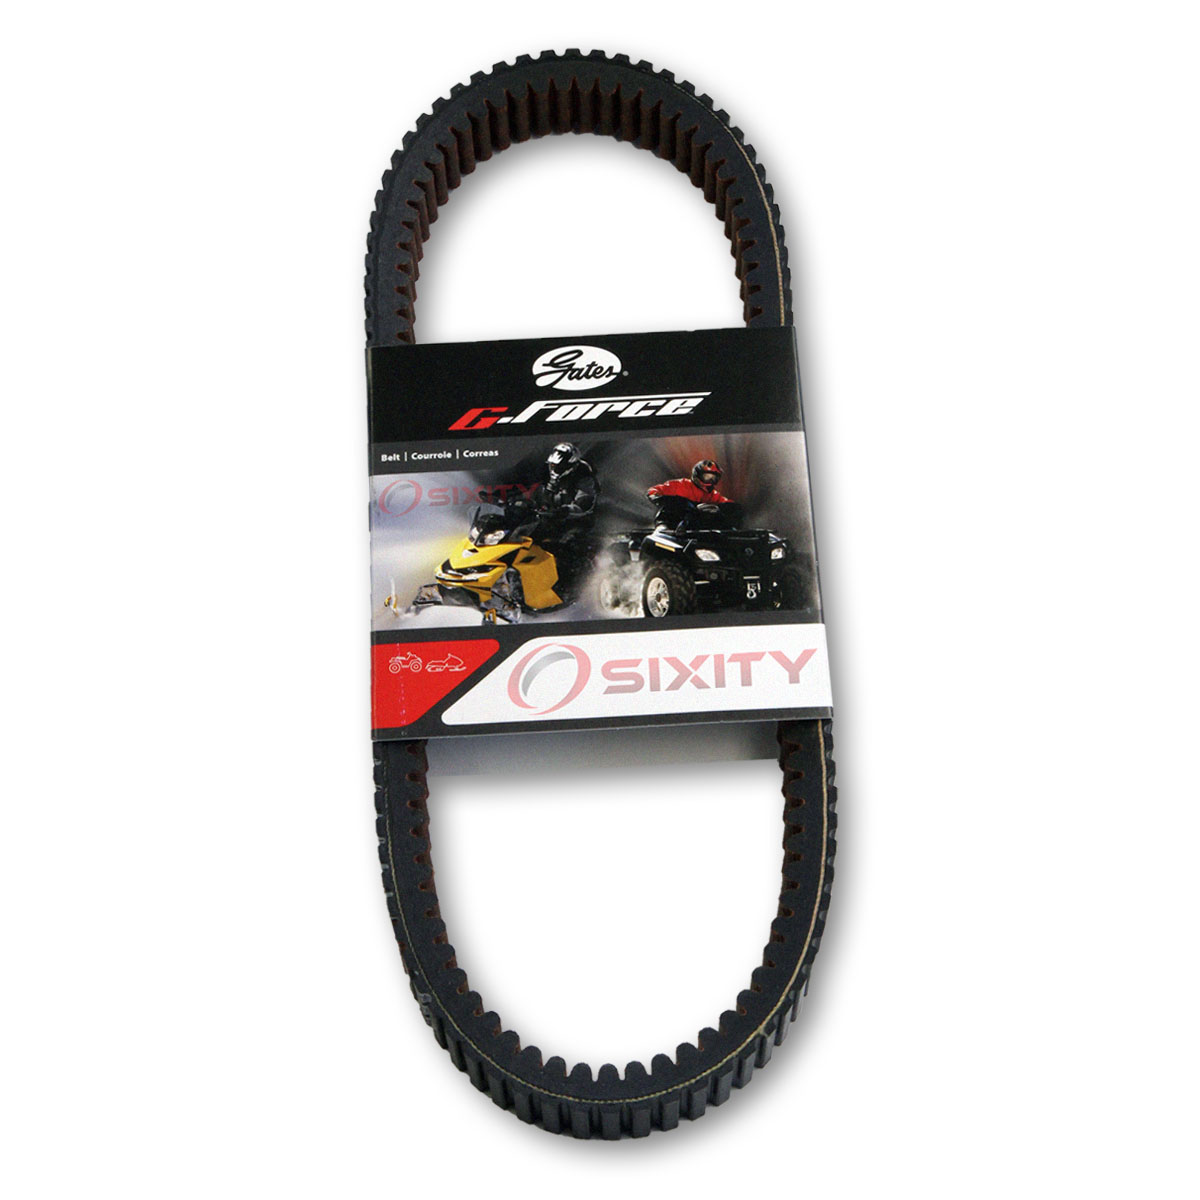 Dayco Aramid Reinforced Drive Belt Replacement to Can-Am 715000302 420280362